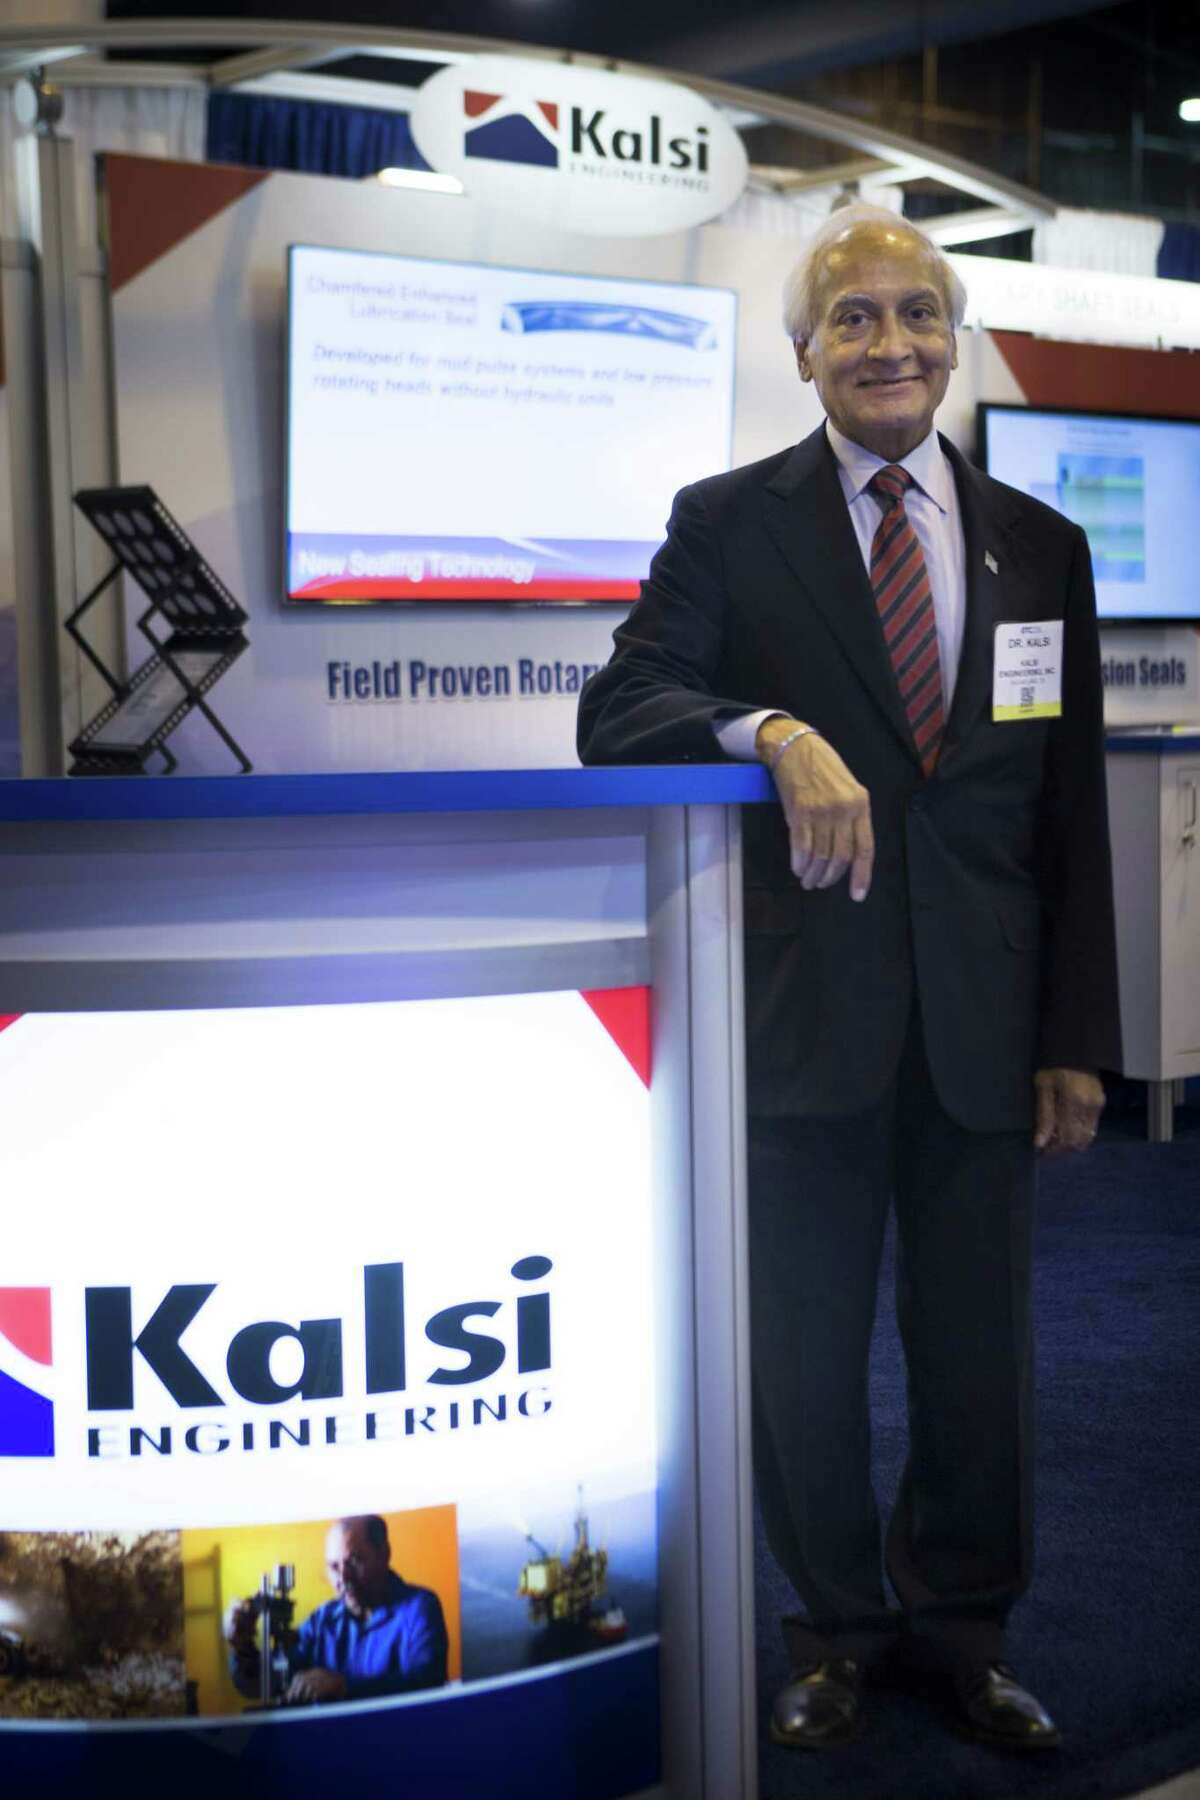 Dr. M.S Kalsi founder of Kalsi Engineering says his company has seen a 50 percent drop in revenue since the oil price collapsed, but his company is in good health due to conservative business practices. Tuesday, May 3, 2016, in Houston. ( Marie D. De Jesus / Houston Chronicle )